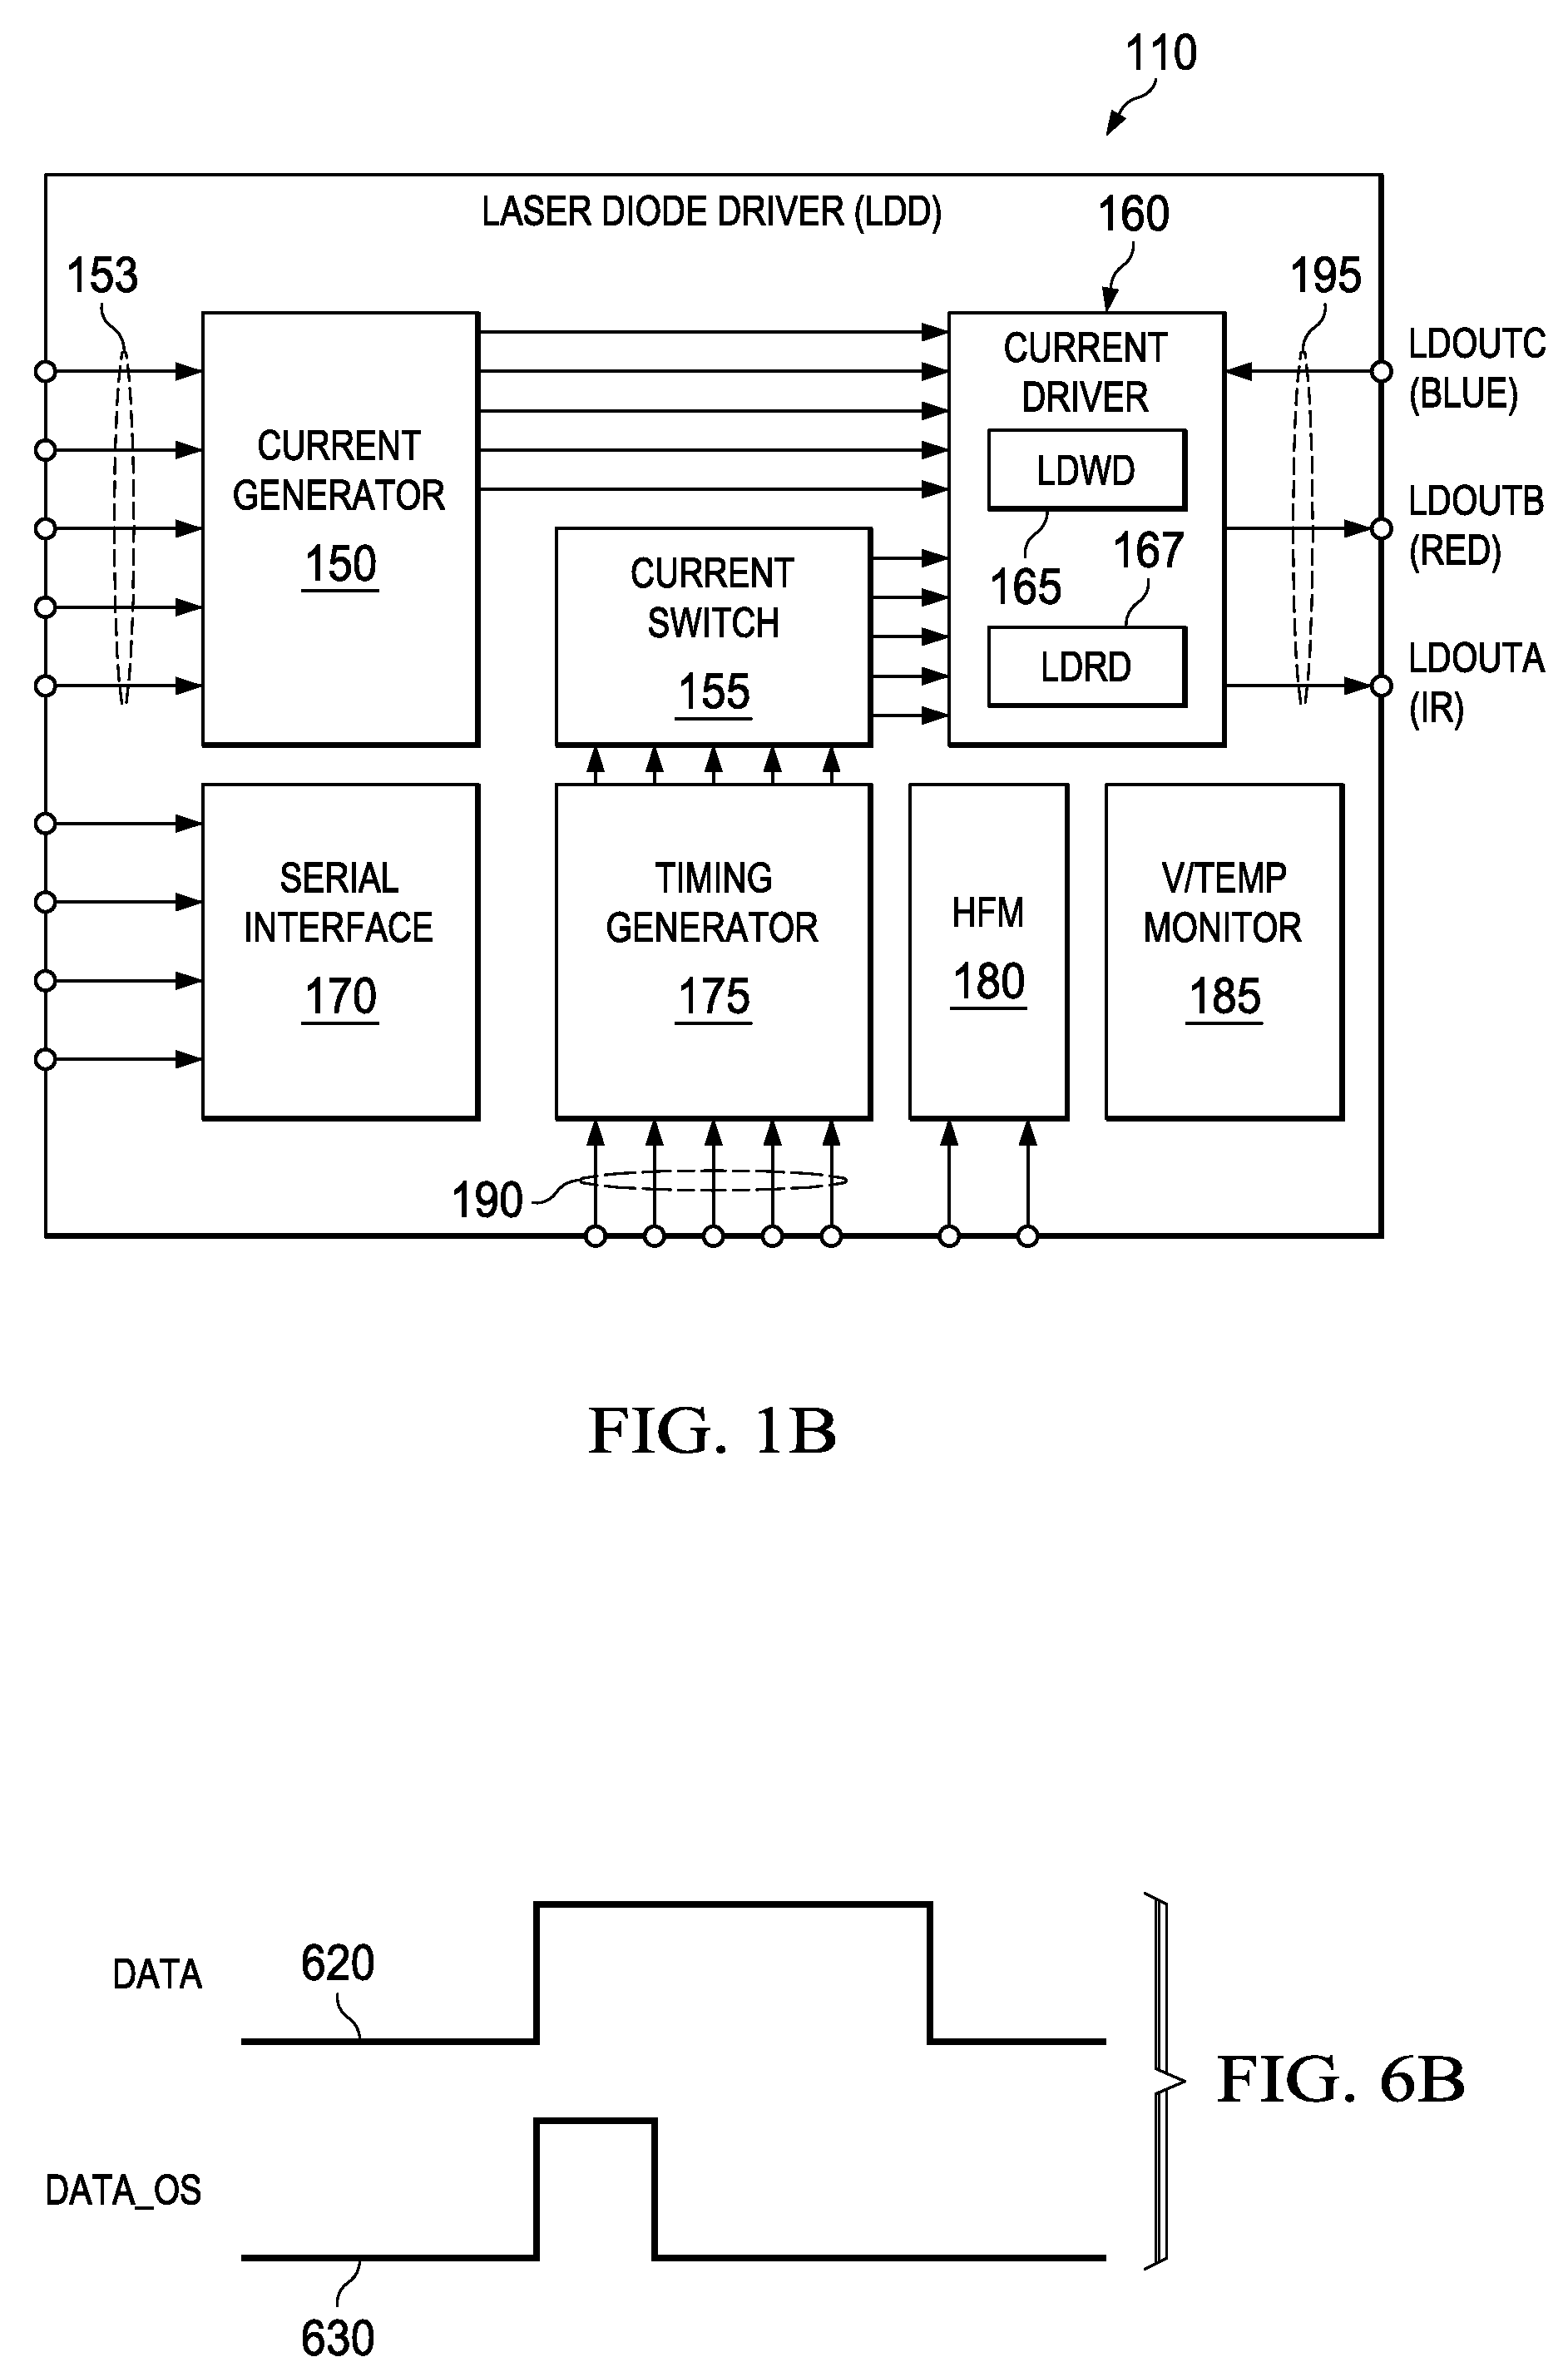 Brevet Us8537868 Laser Diode Write Driver Feedback Current Mirror Diagram Highspeed Patent Drawing